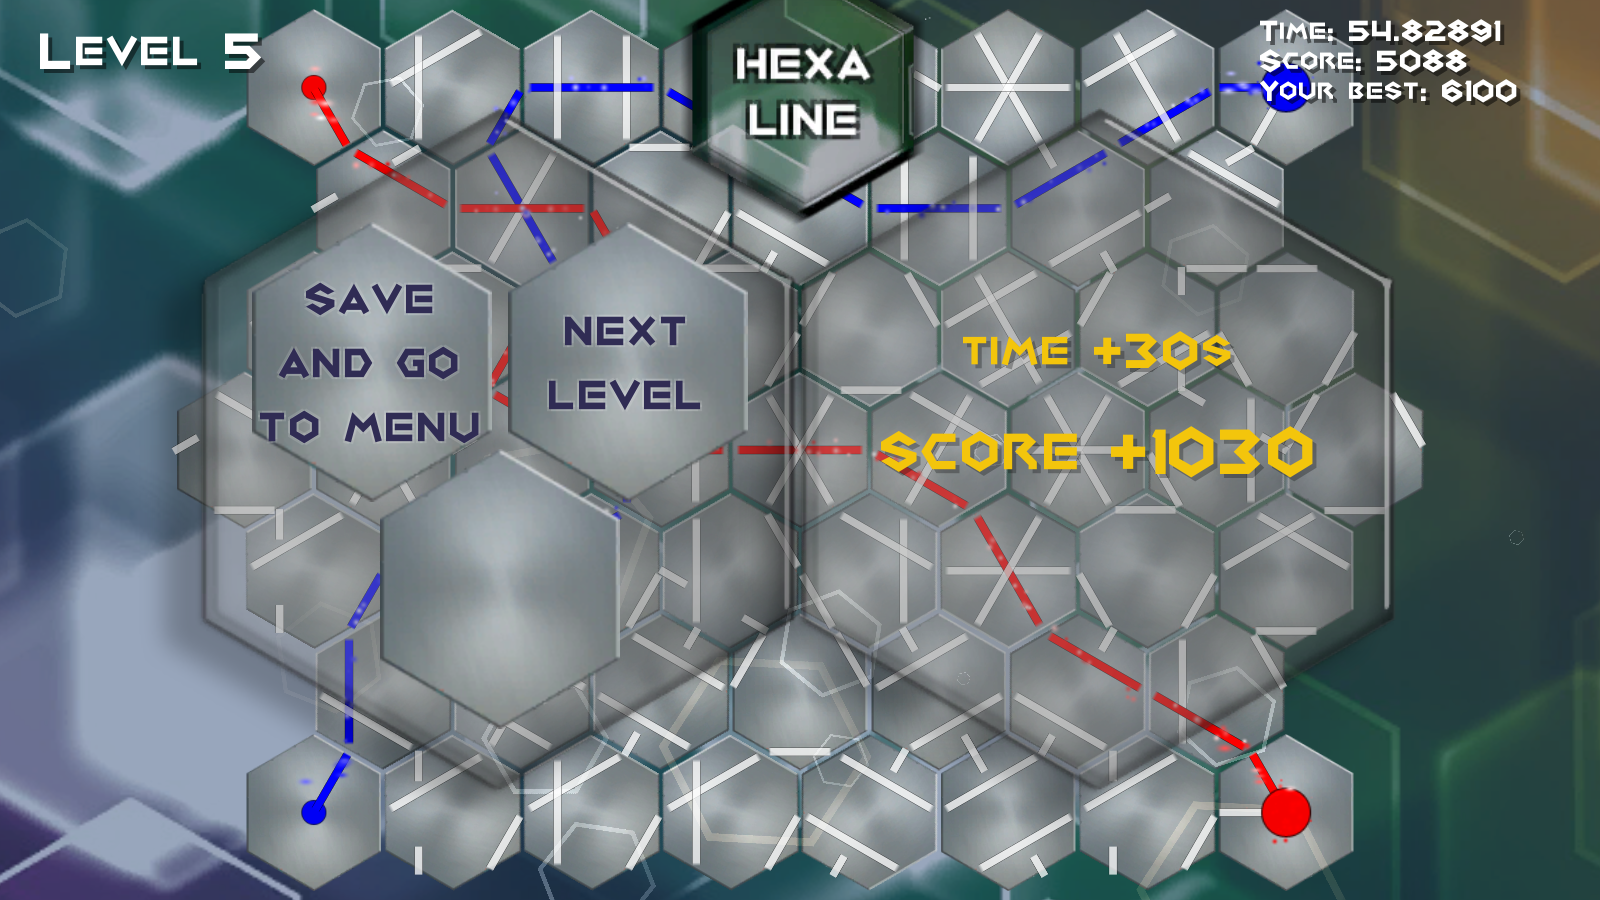 HexaLine - HARD ARCADE / PUZZLE GAME- screenshot